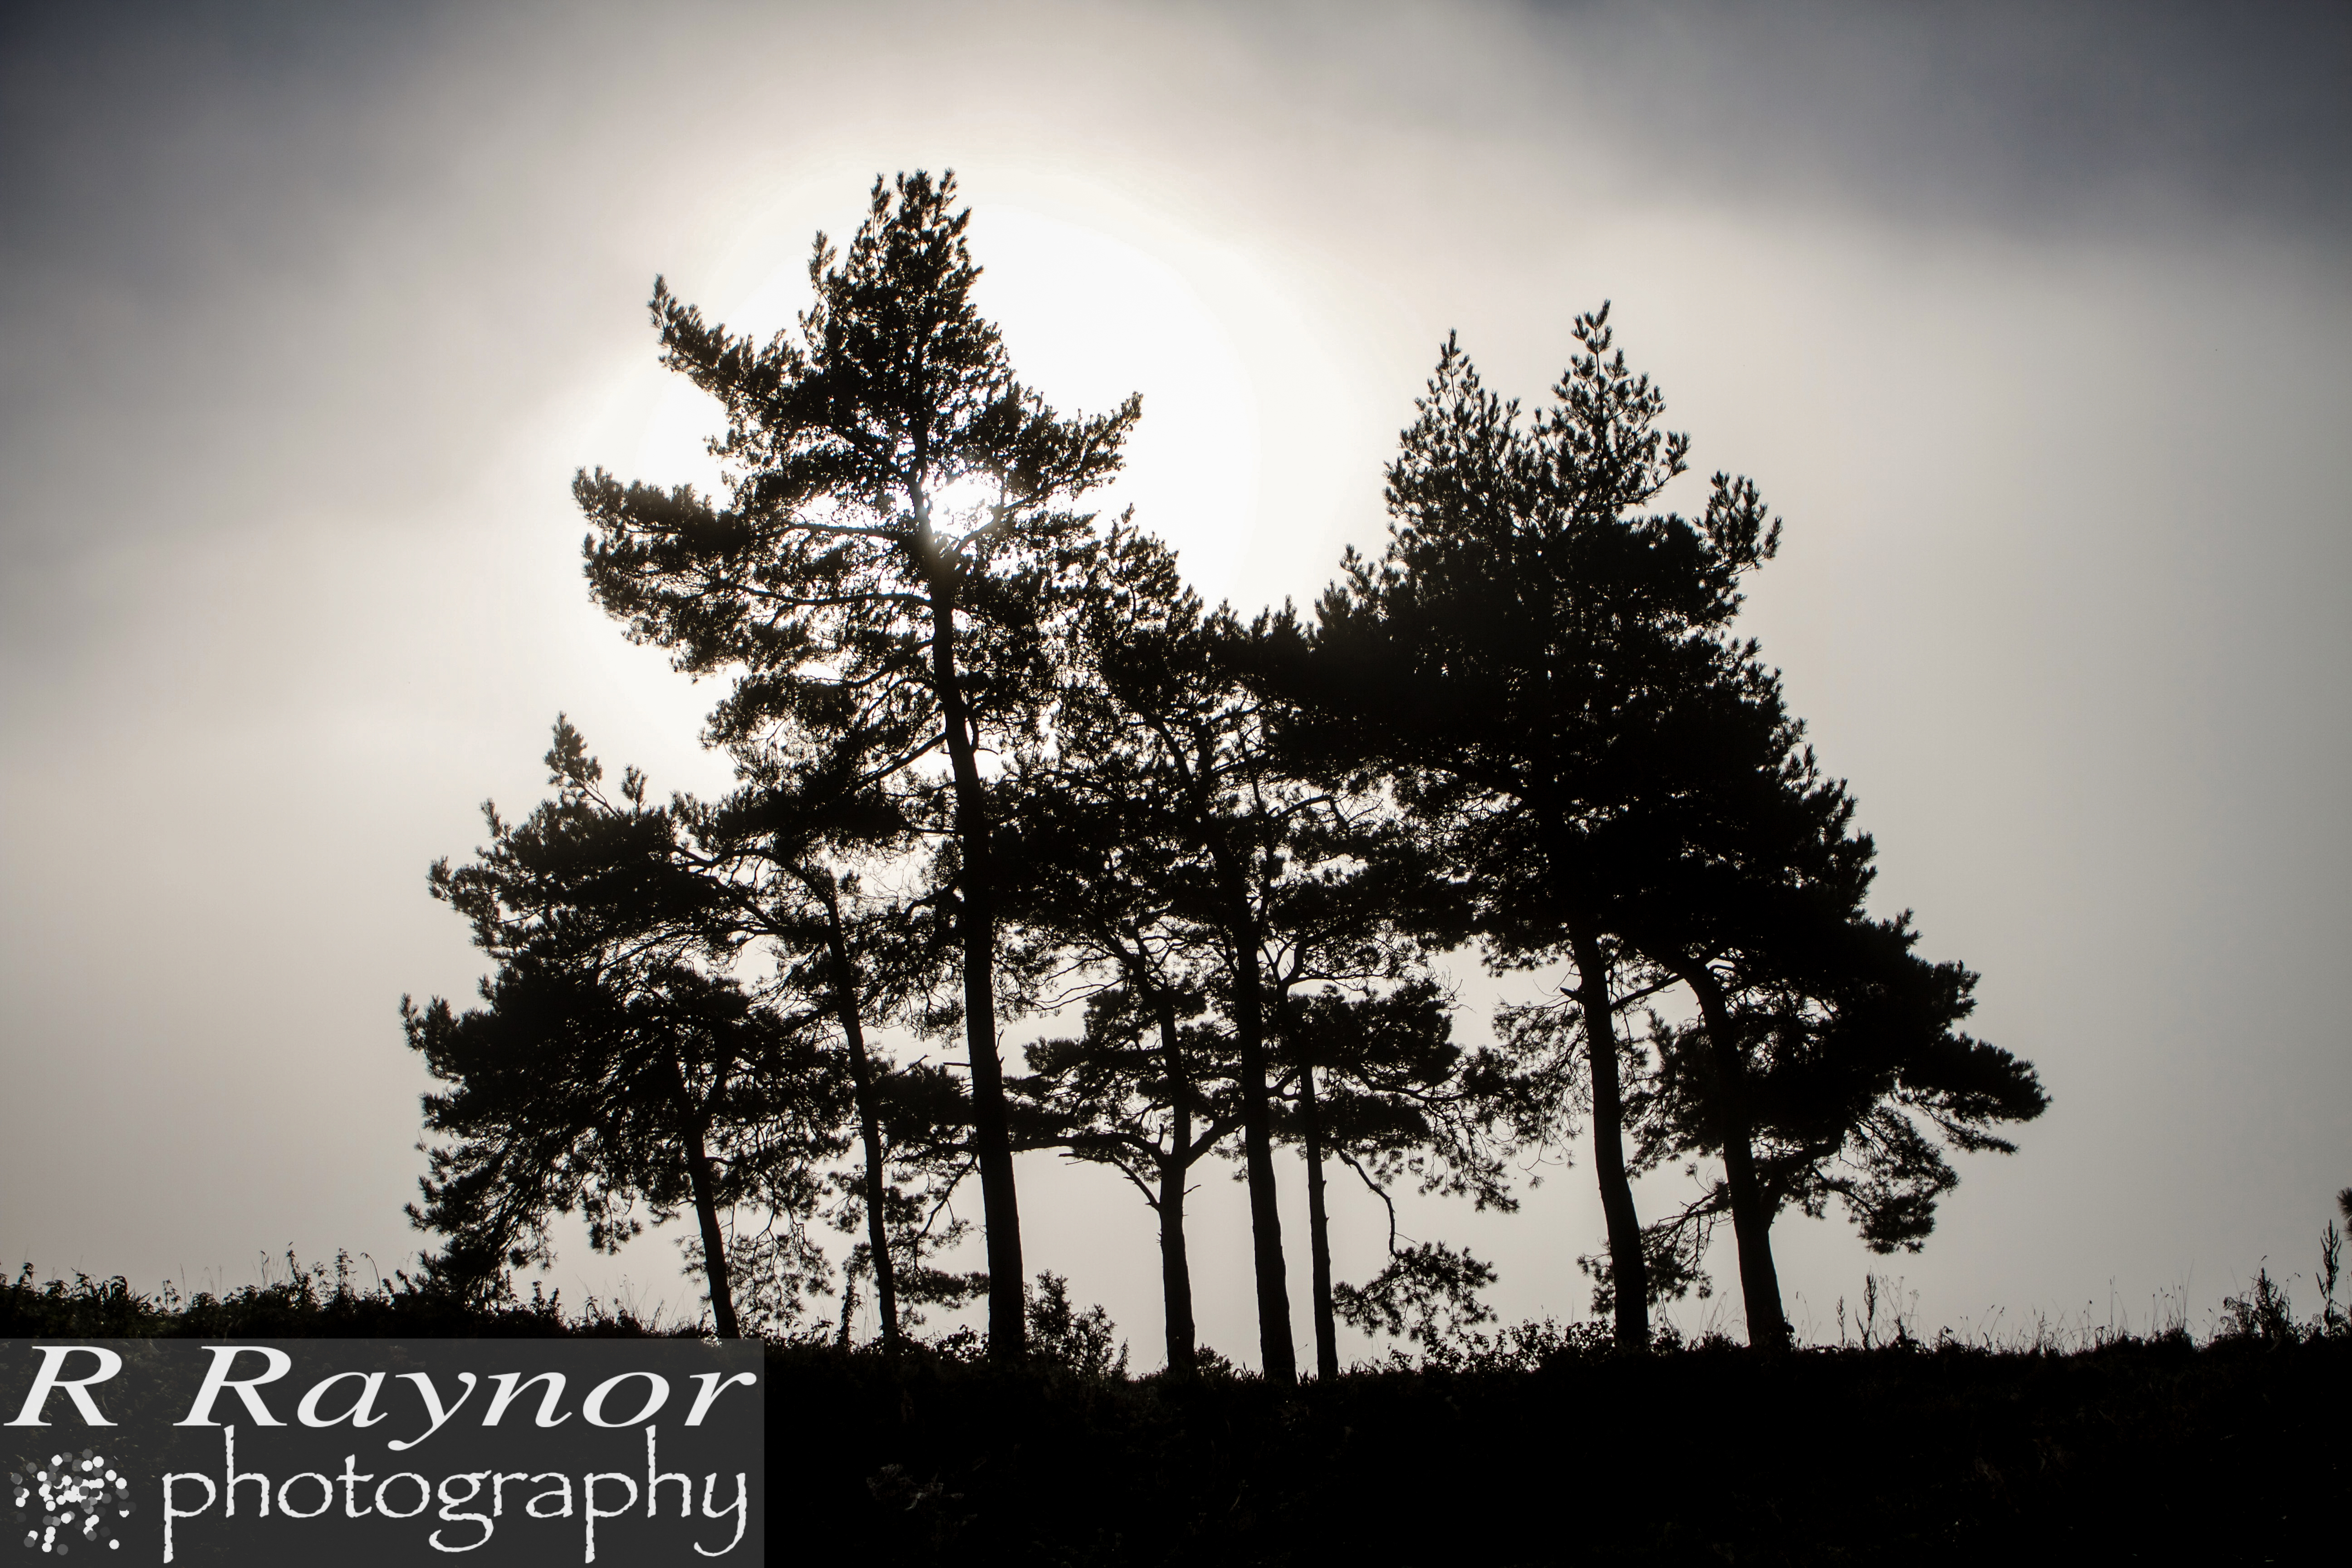 First_20151101_RRaynor0023